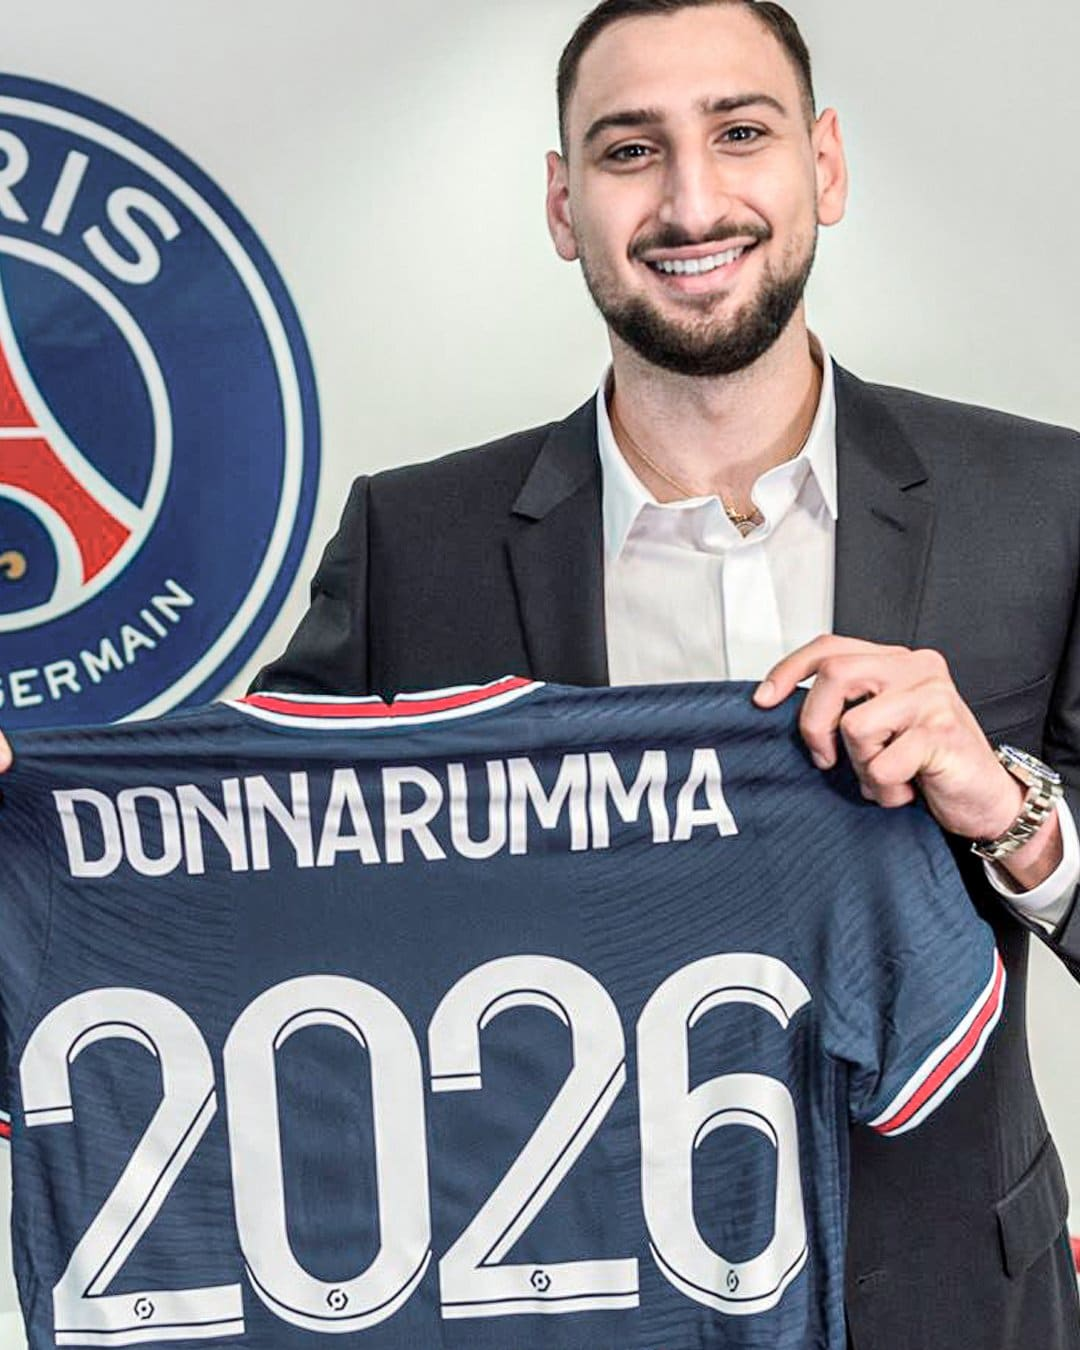 OFFICIAL: Euro 2020 MVP Donnarumma Joins PSG On Five-Year Deal